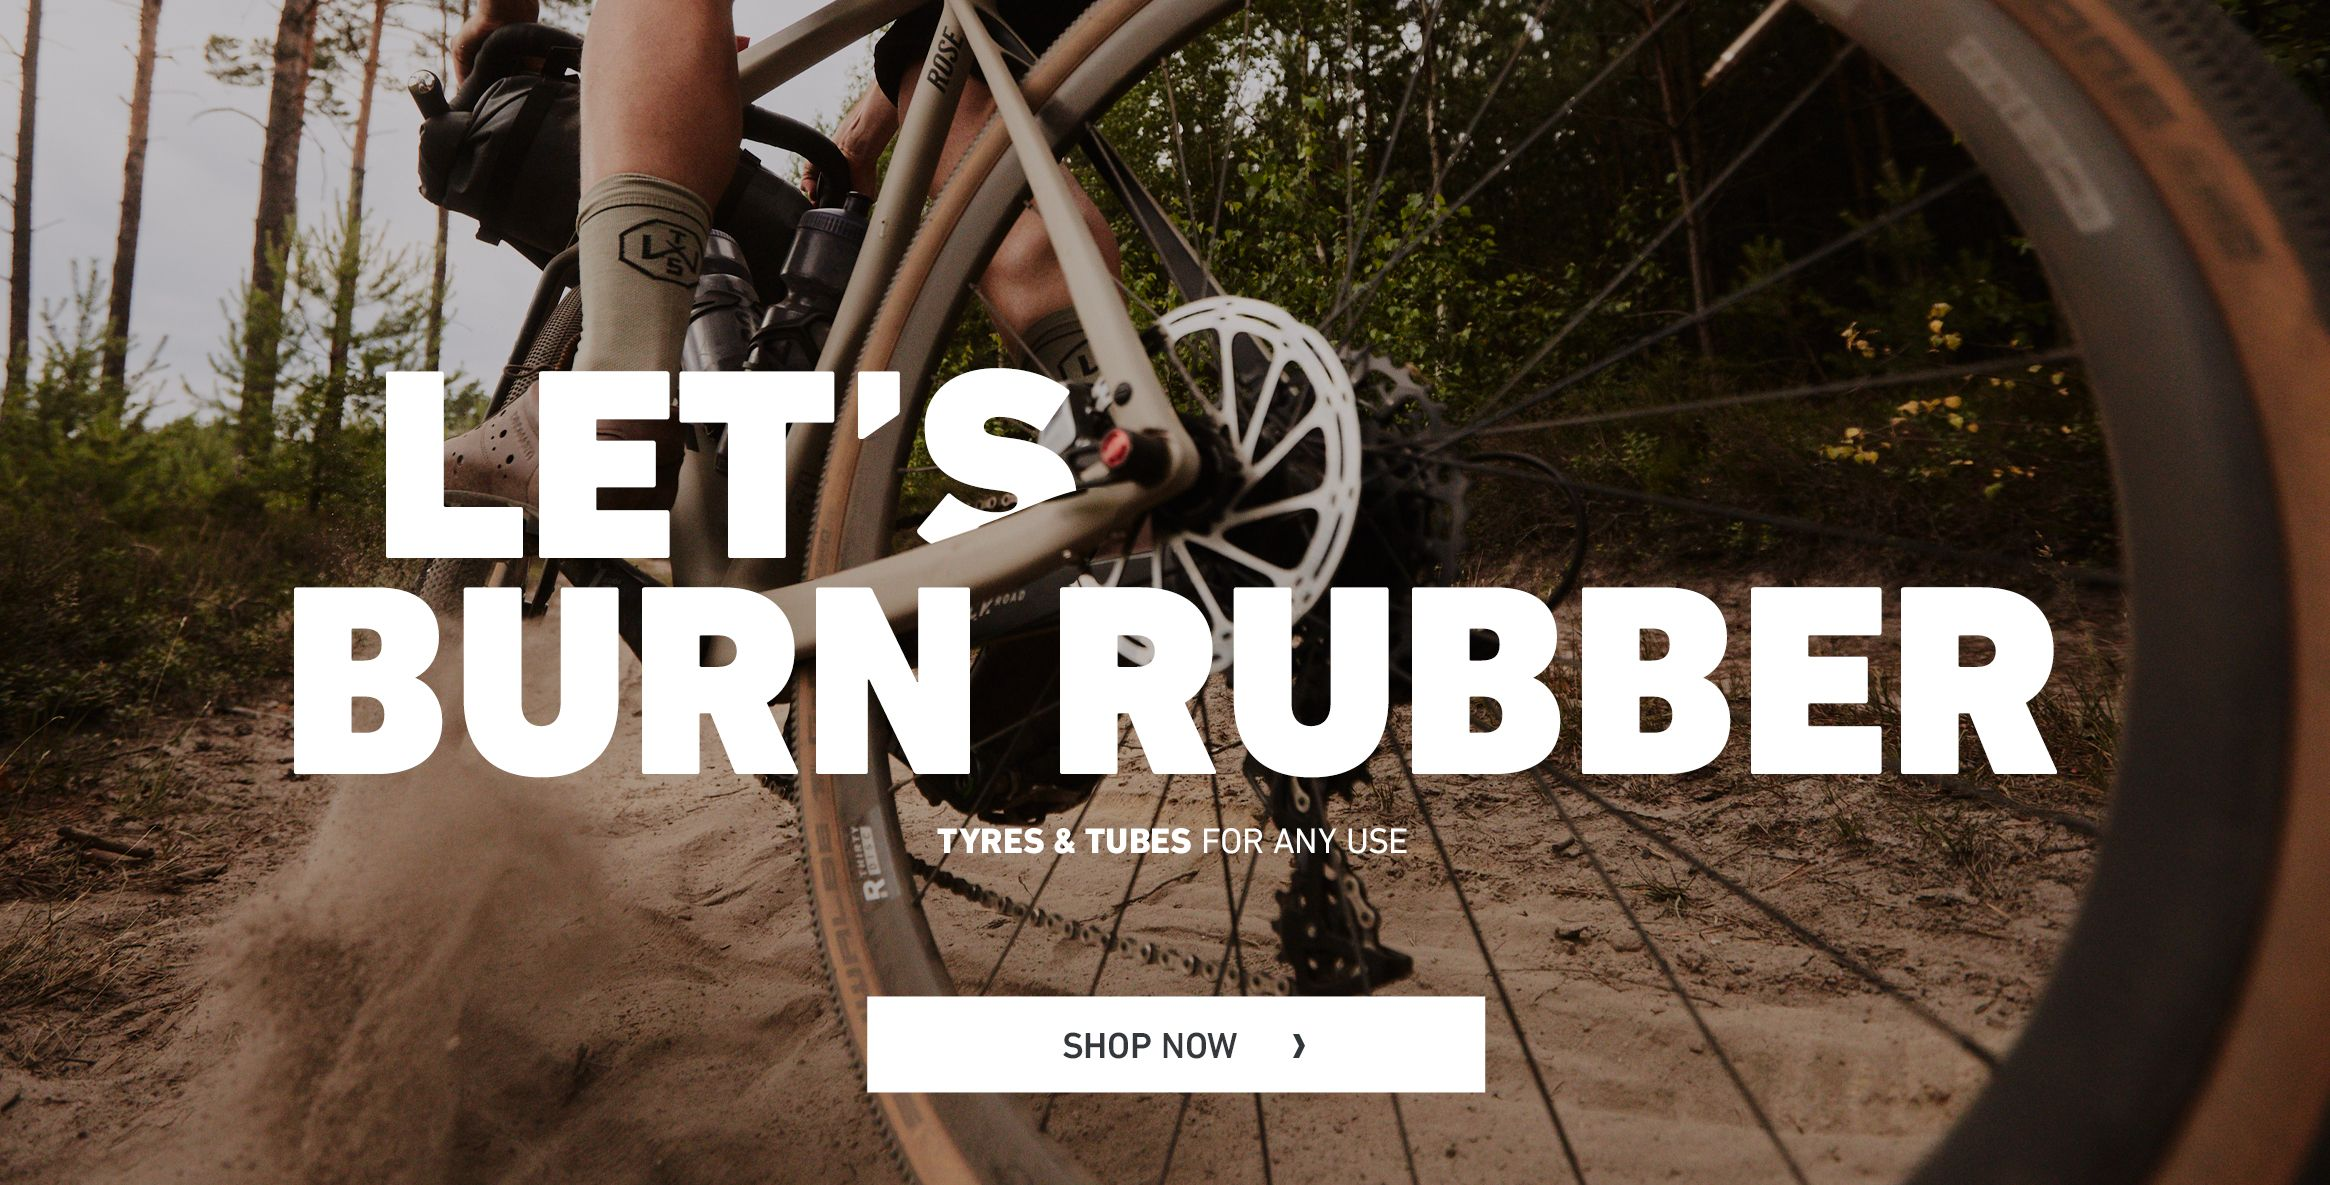 Zweefdeurkast Quadra Plus.The Bike Shop With Over 110 Years Of Tradition Rose Bikes